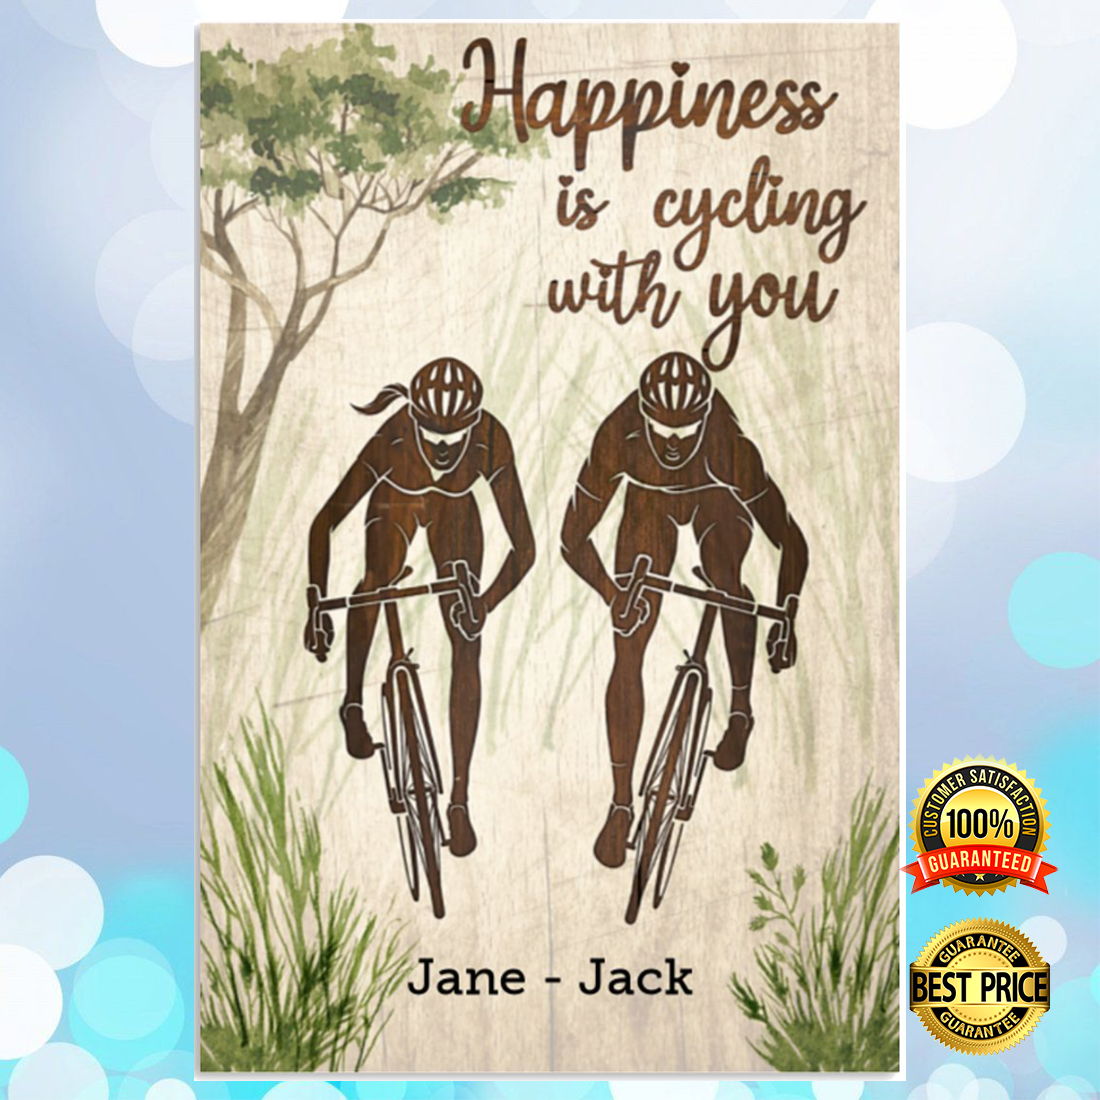 Personalized happiness is cycling with you poster 5